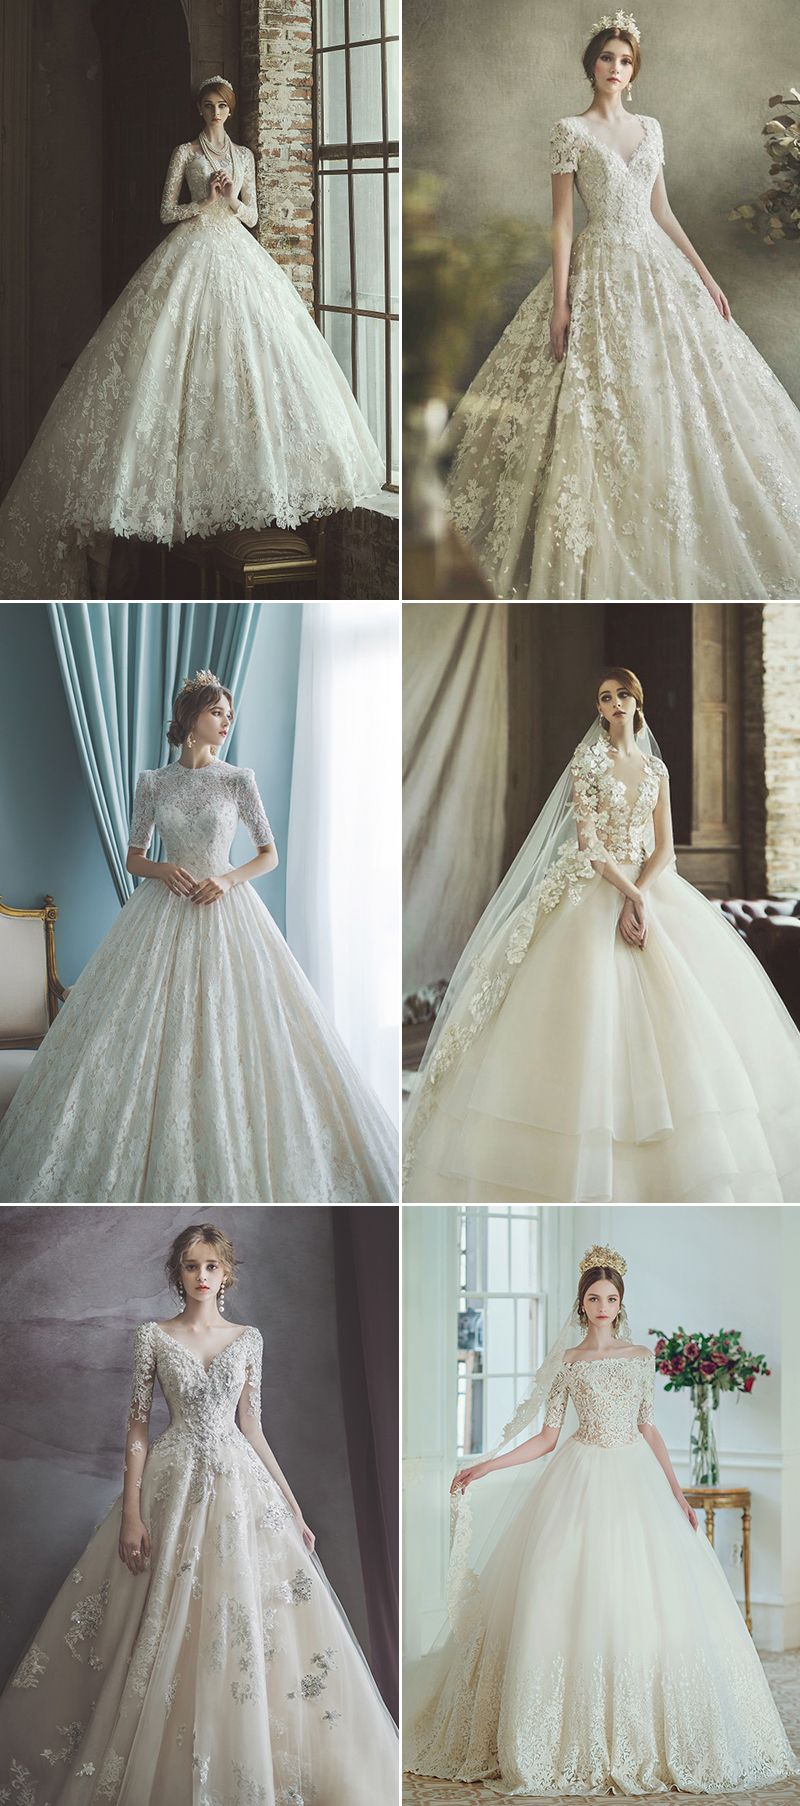 The Wedding Dress Wish List From Brides To Be 5 Gown Styles